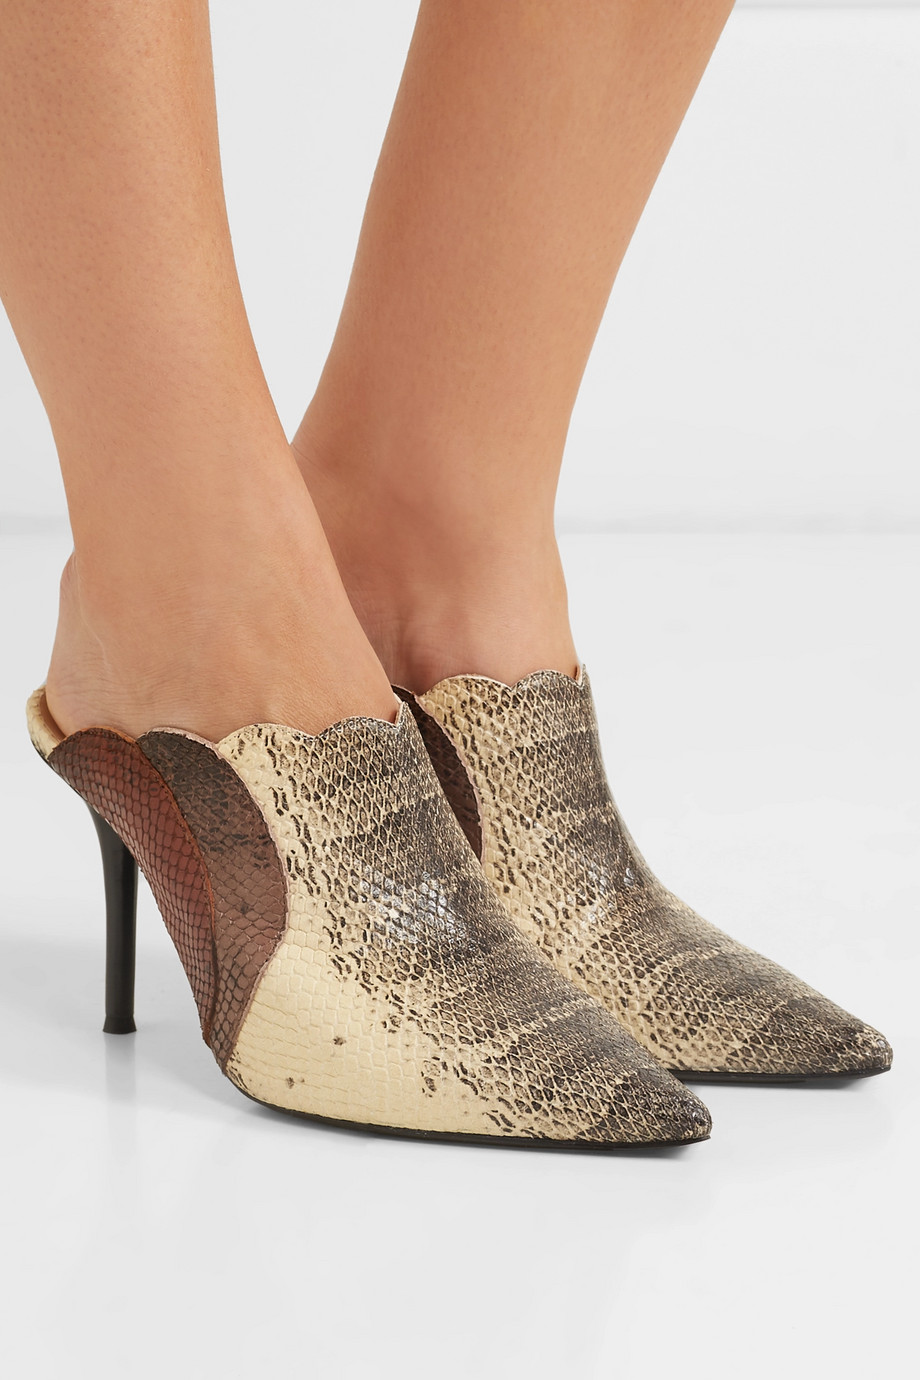 Chloé Lauren scalloped snake-effect leather mules